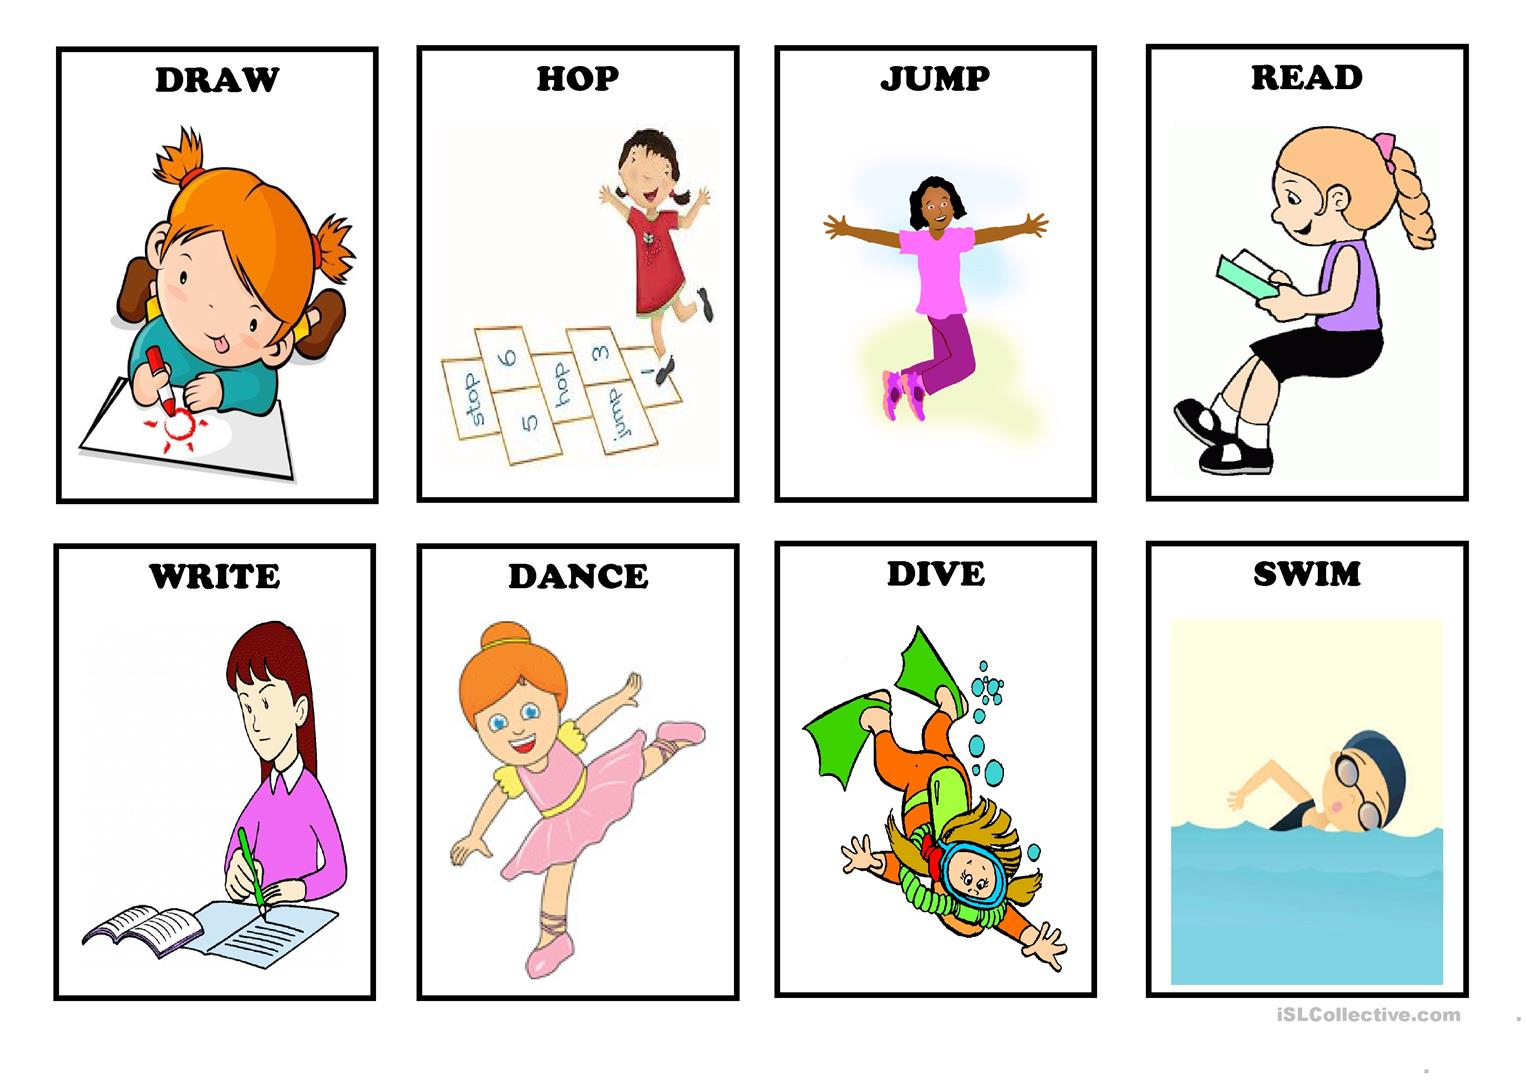 Action Verbs - Flash Cards (Set 1) Worksheet - Free Esl Printable - Free Printable Spanish Verb Flashcards